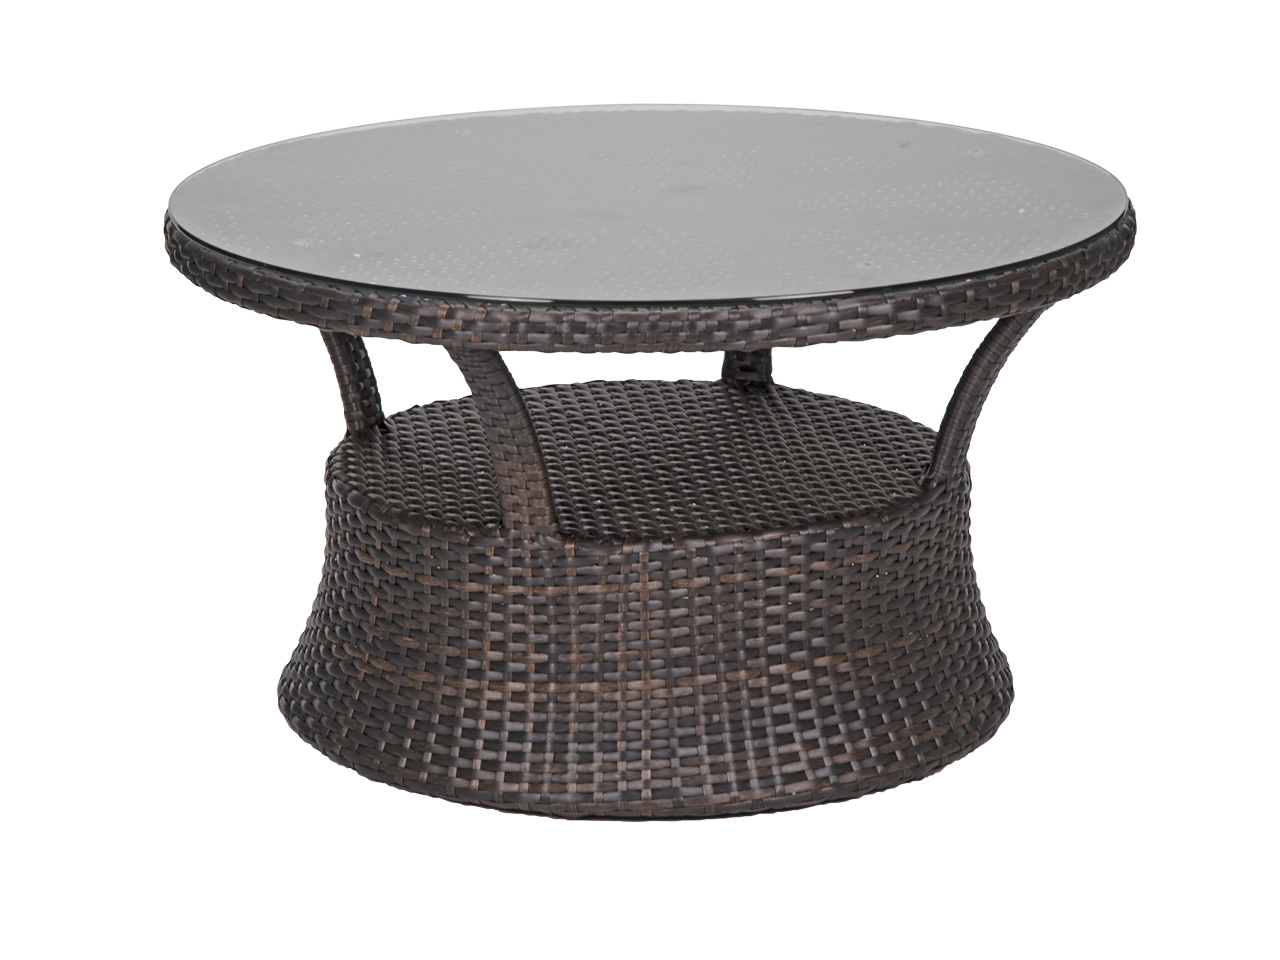 coffee and side tables fortunoff backyard wickr round aluminum accent table san lucas woven resin wicker glass top conversation desk chairs wireless lamp home goods dining room